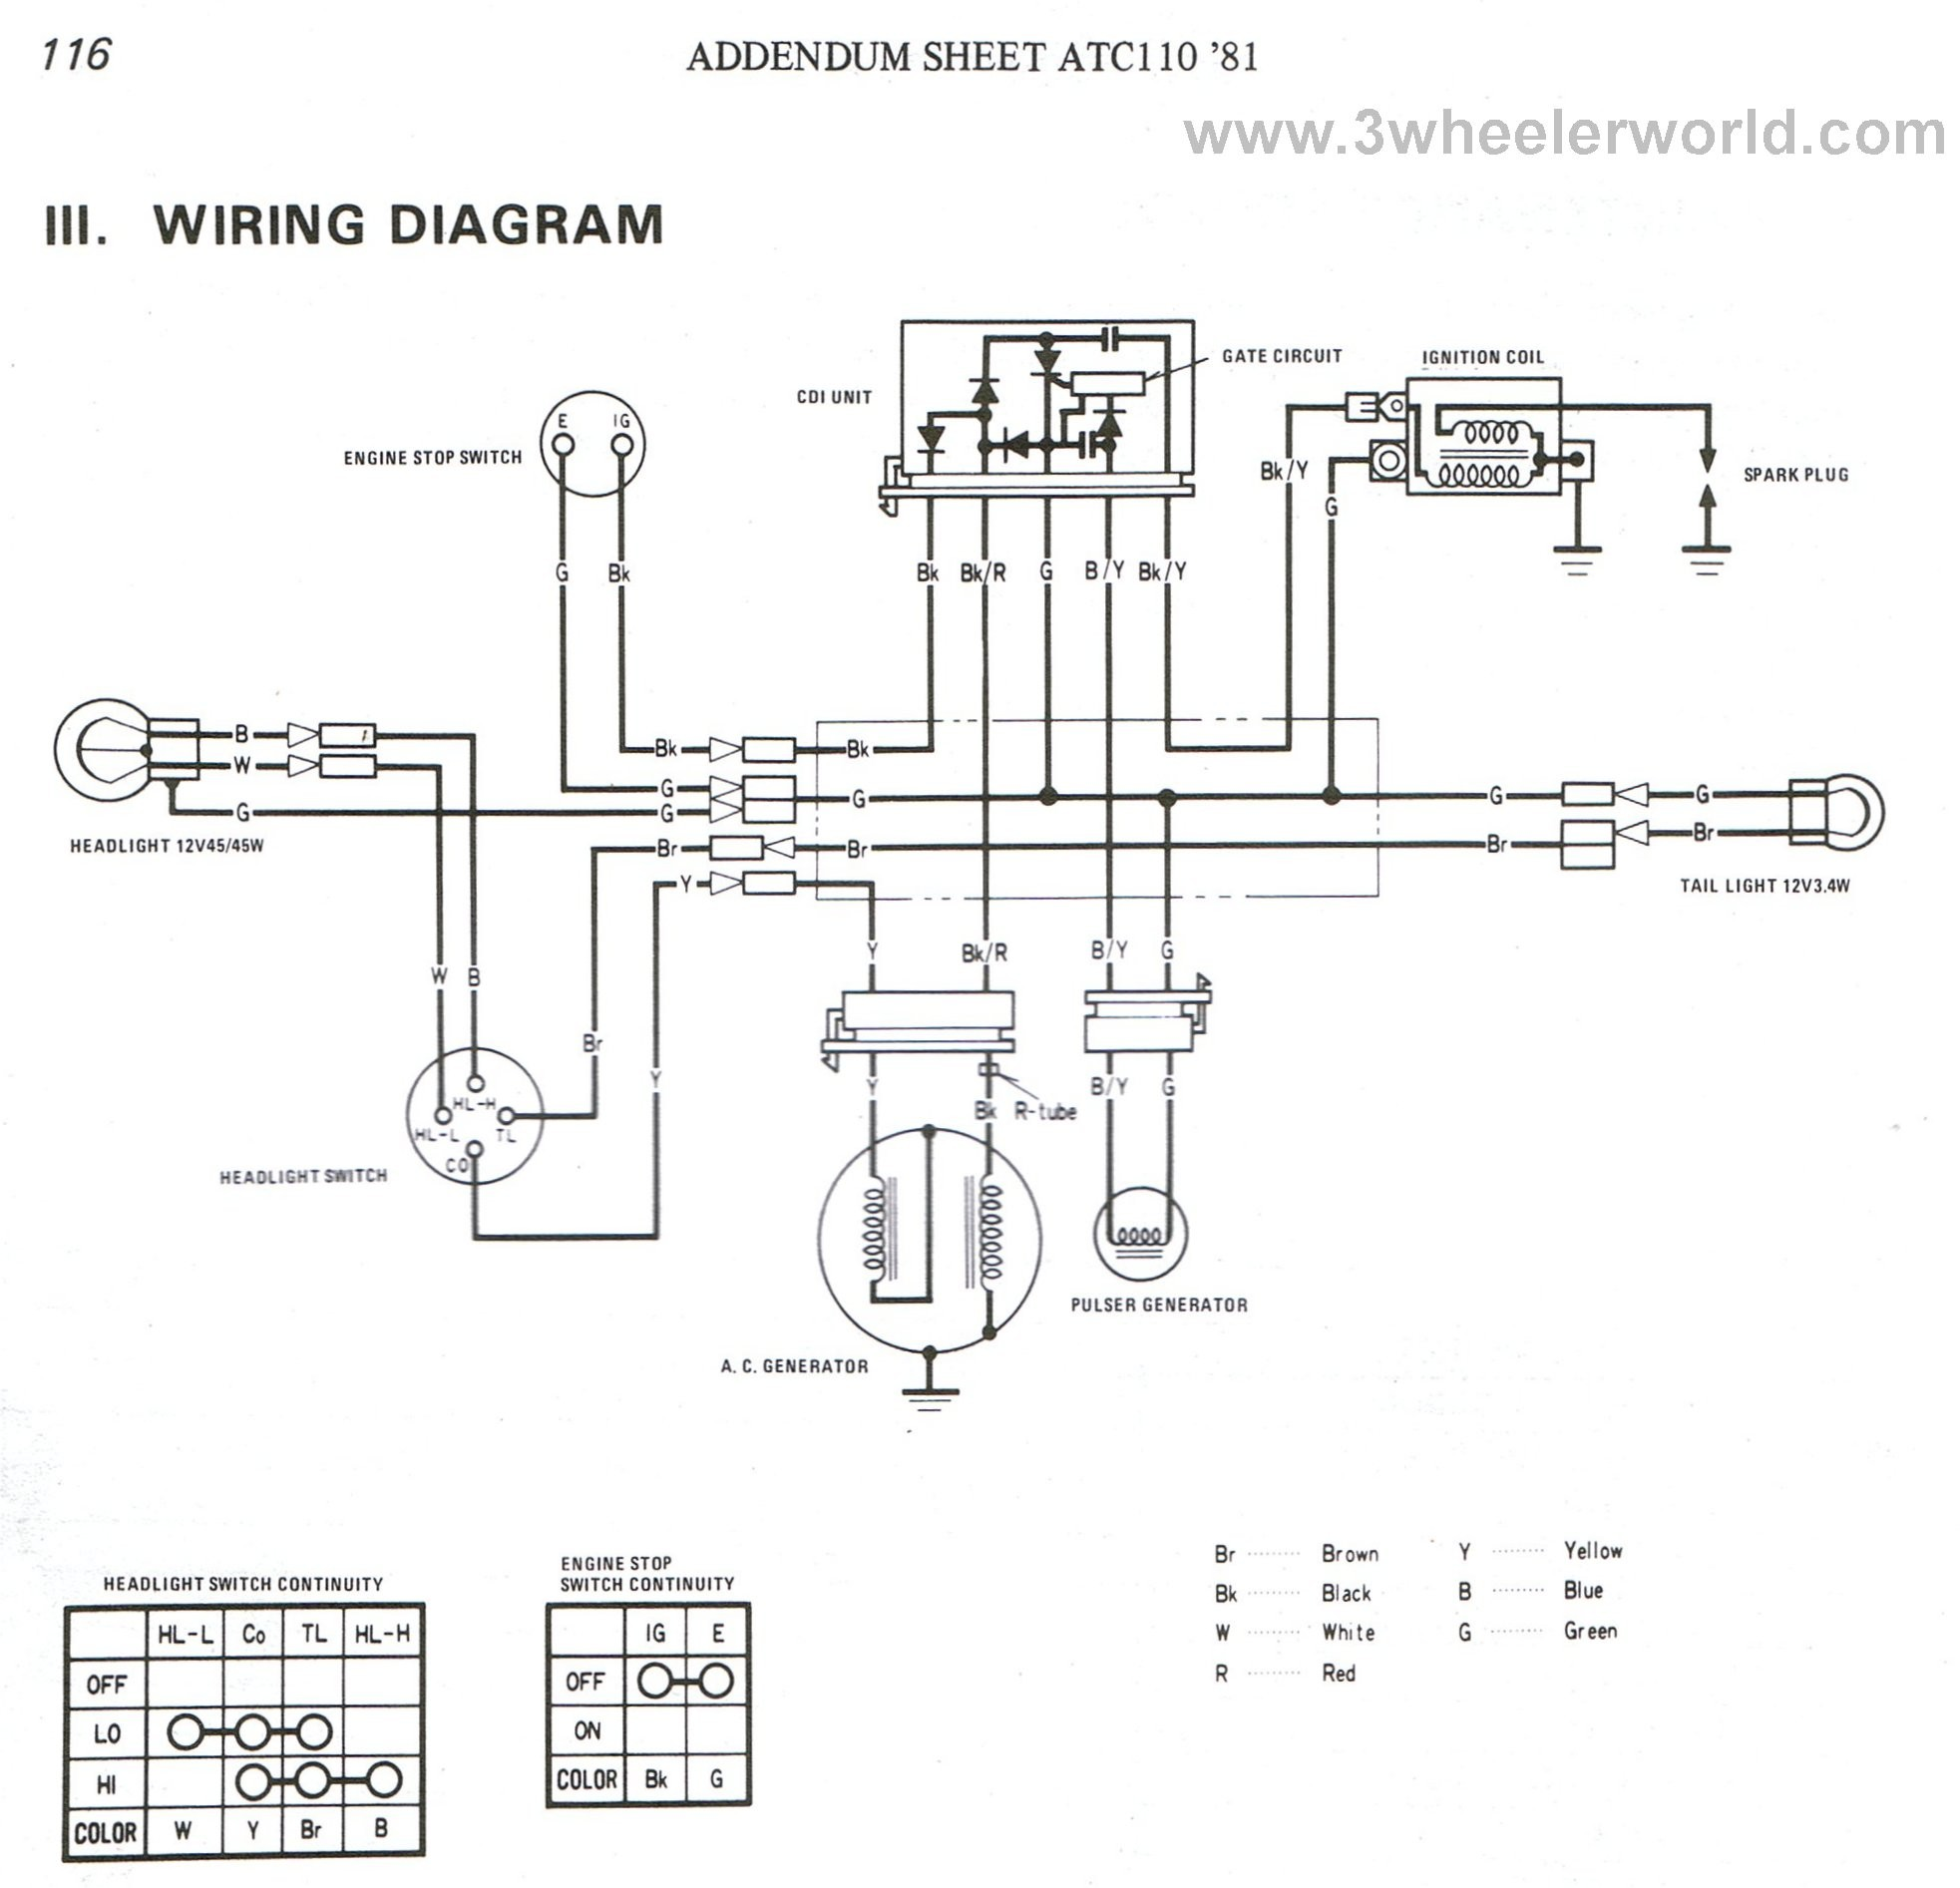 Dirt bike voltage regulator wiring diagrams